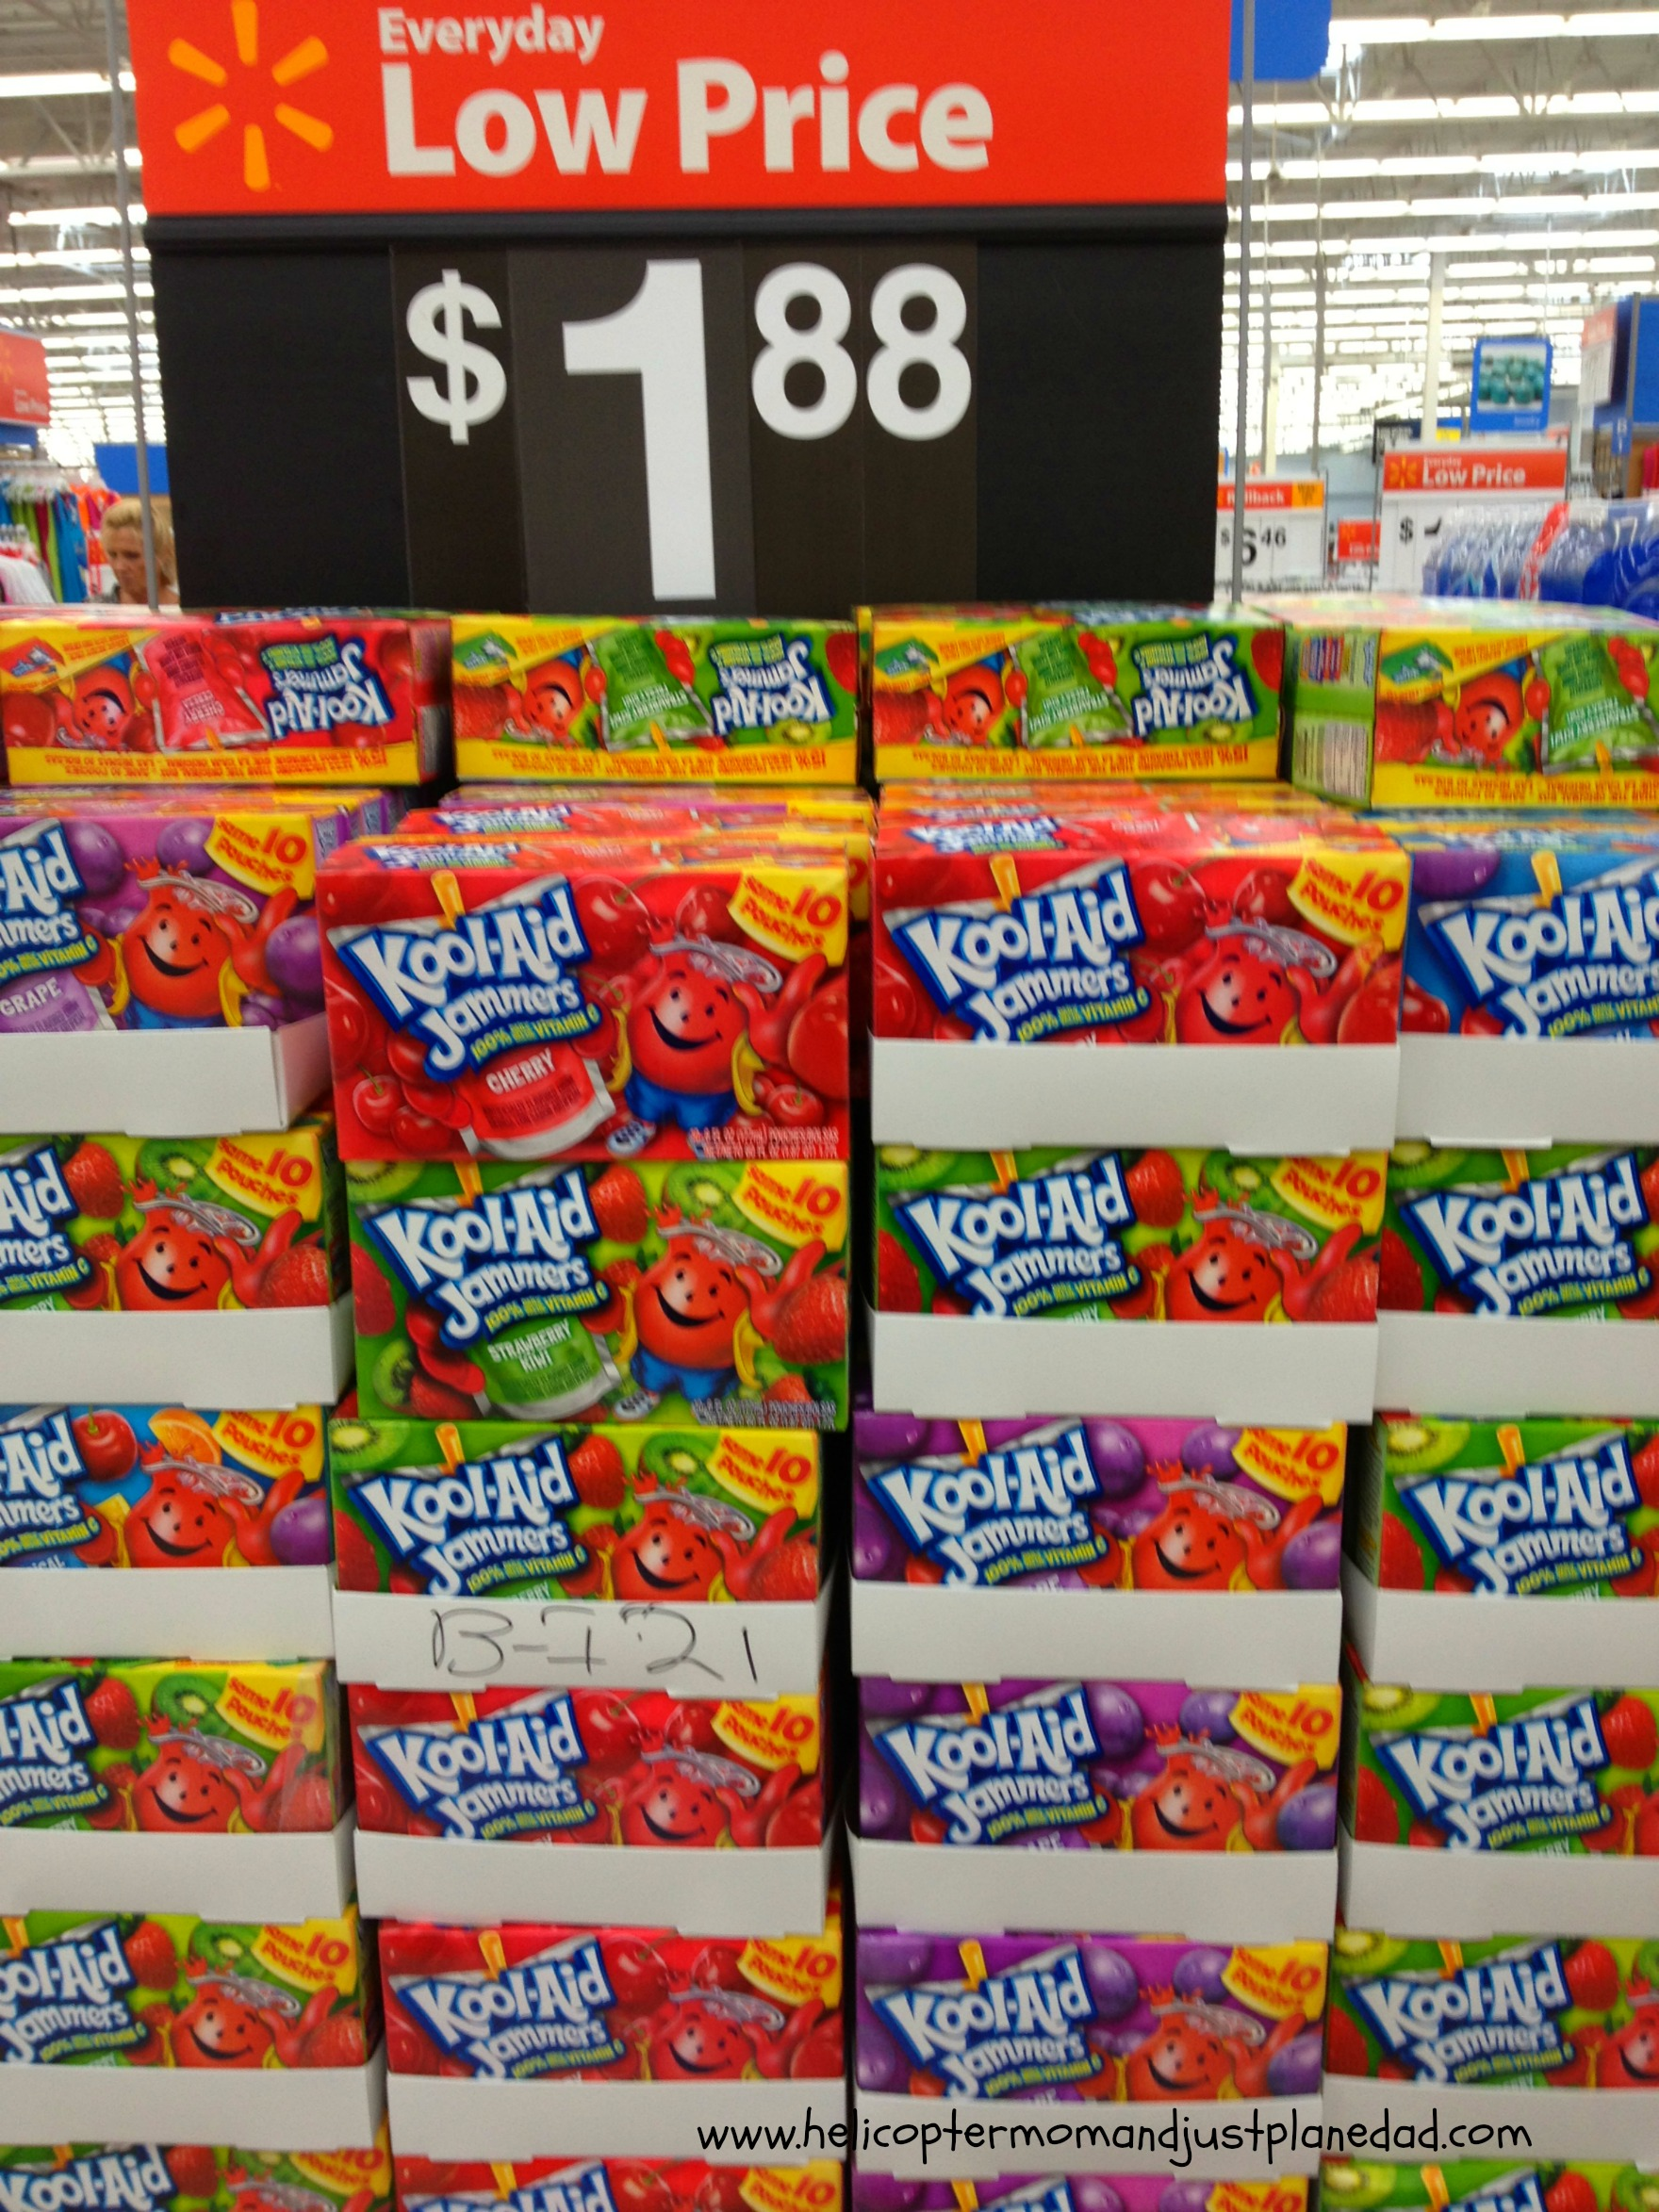 kool aid jammers displays